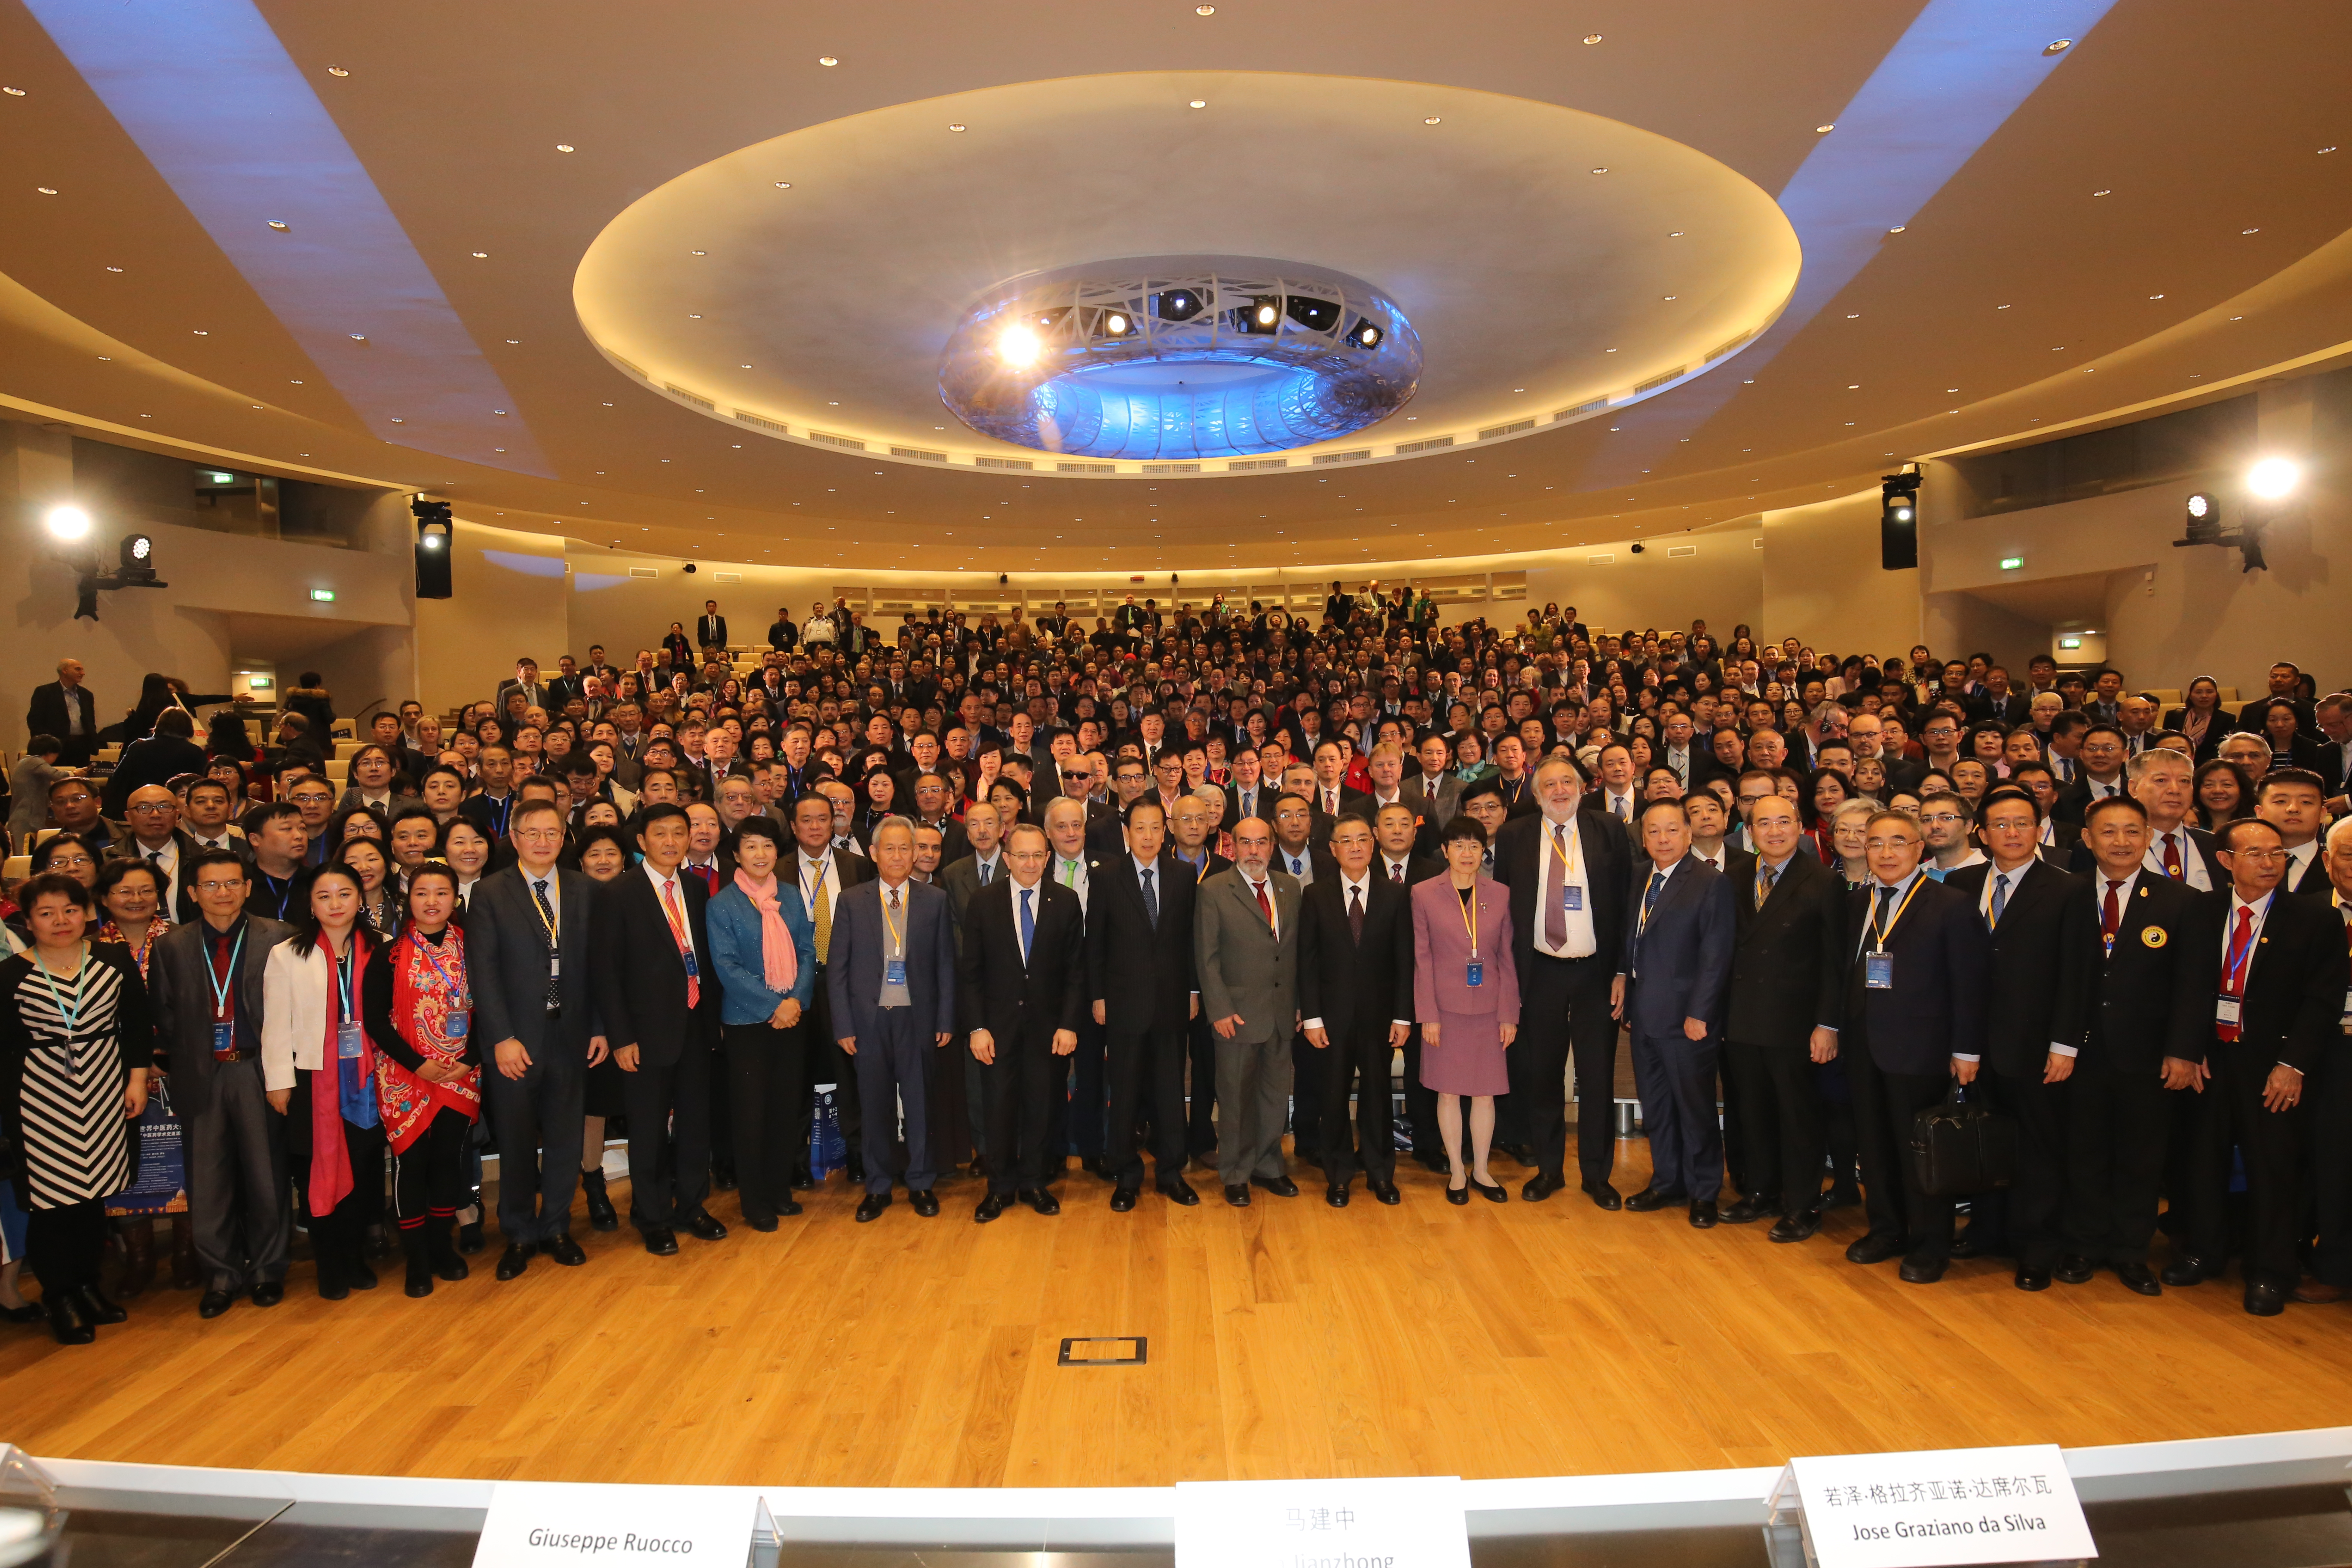 15th WCCM in Rome